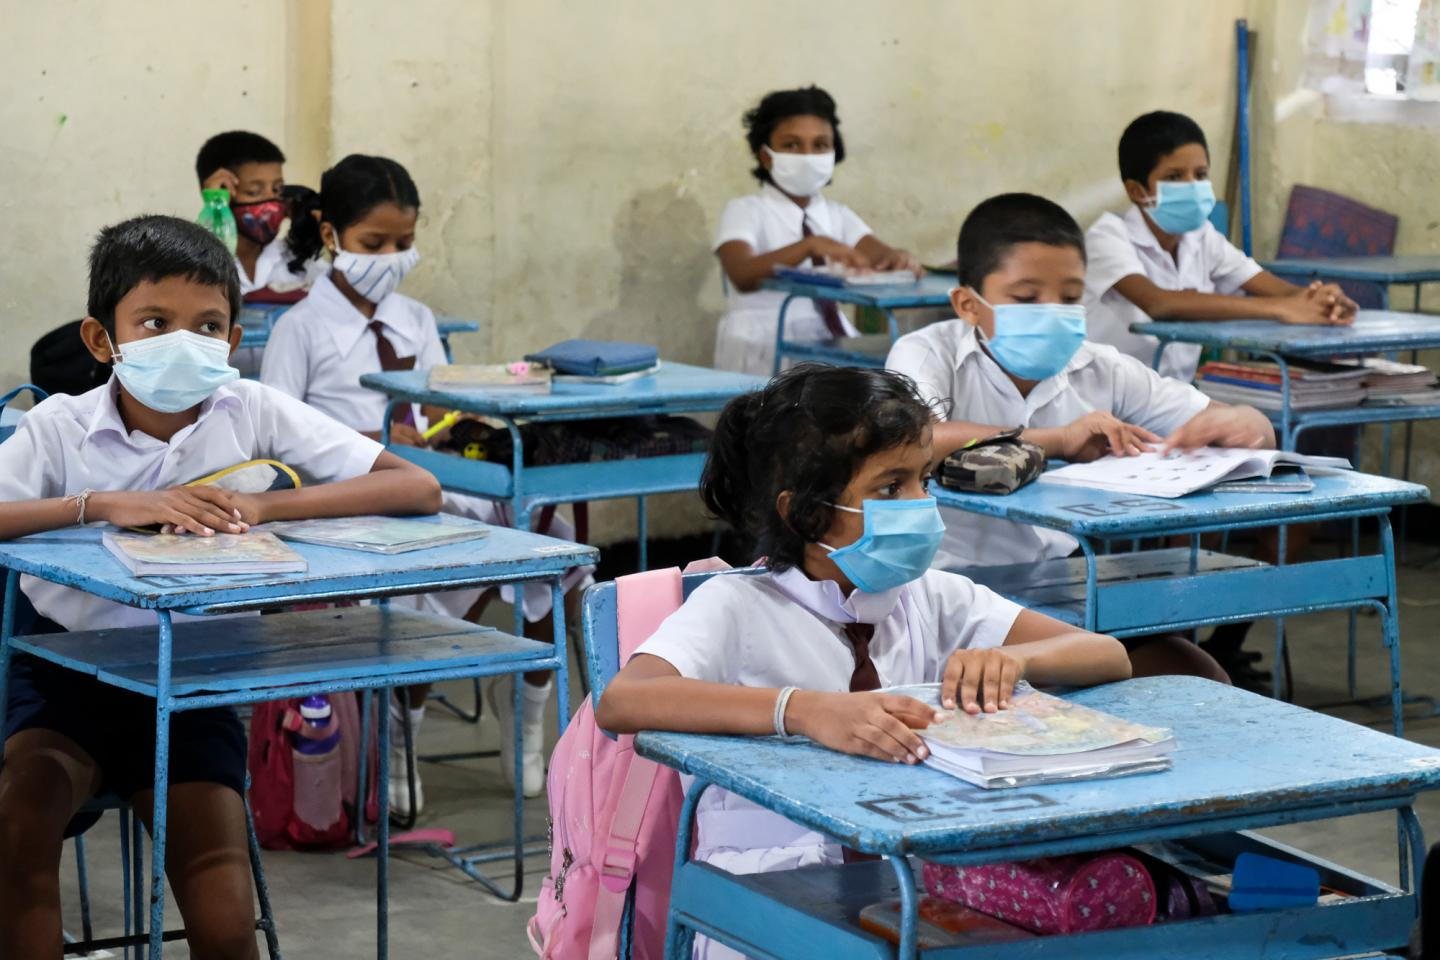 COVID-19: Sri Lanka reopens schools after year of closures